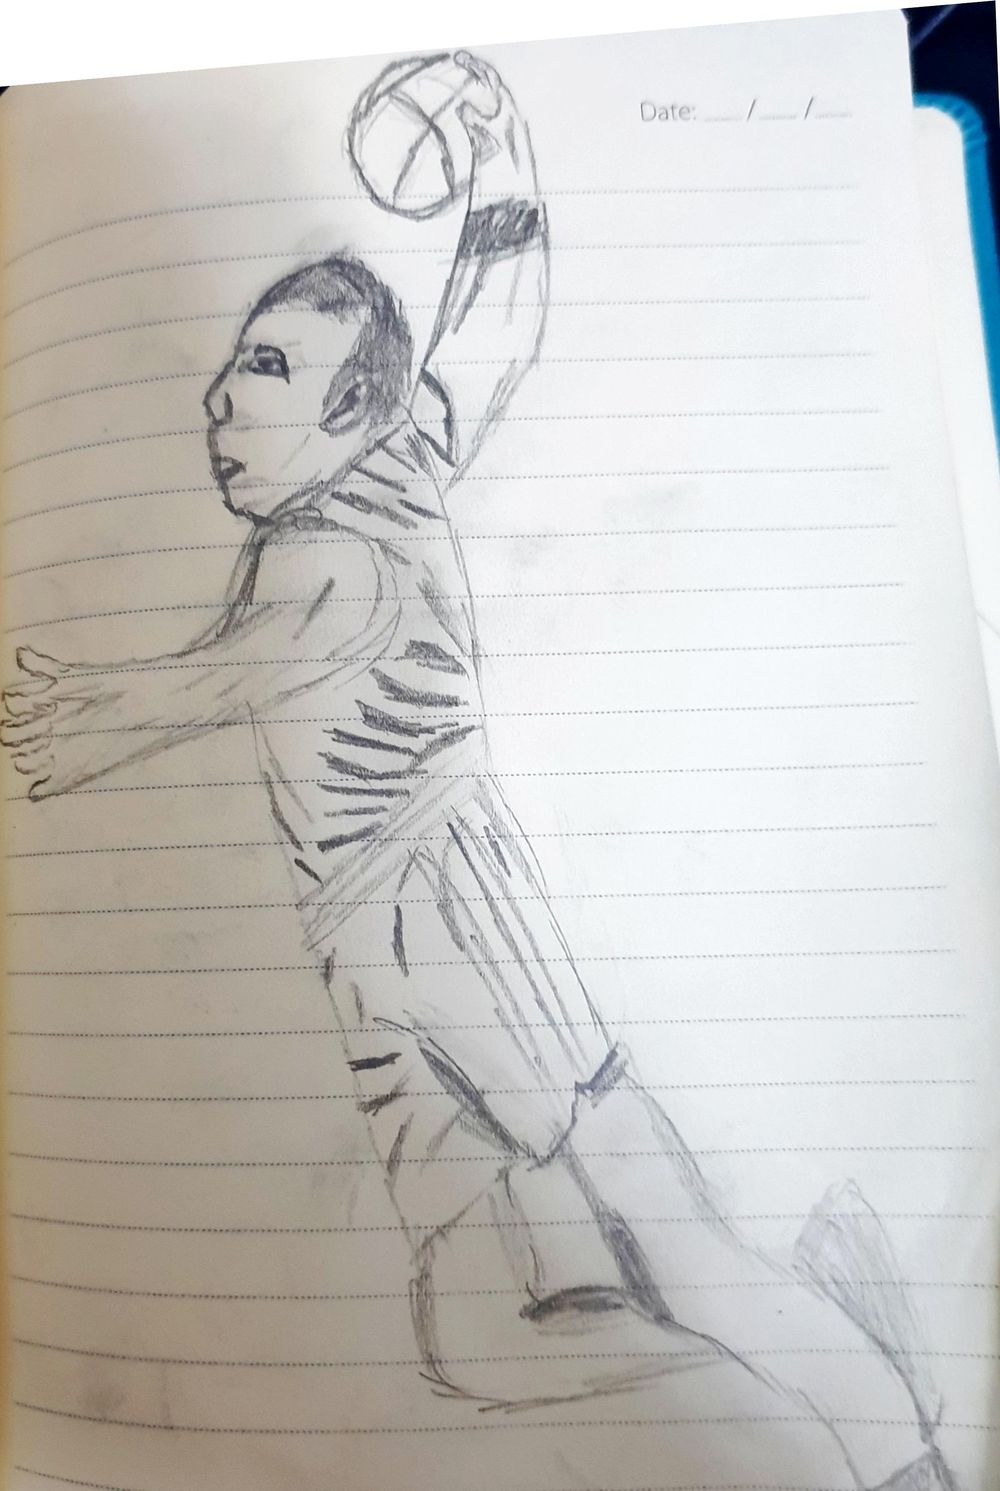 Dynamic Drawing Assignment. - image 3 - student project